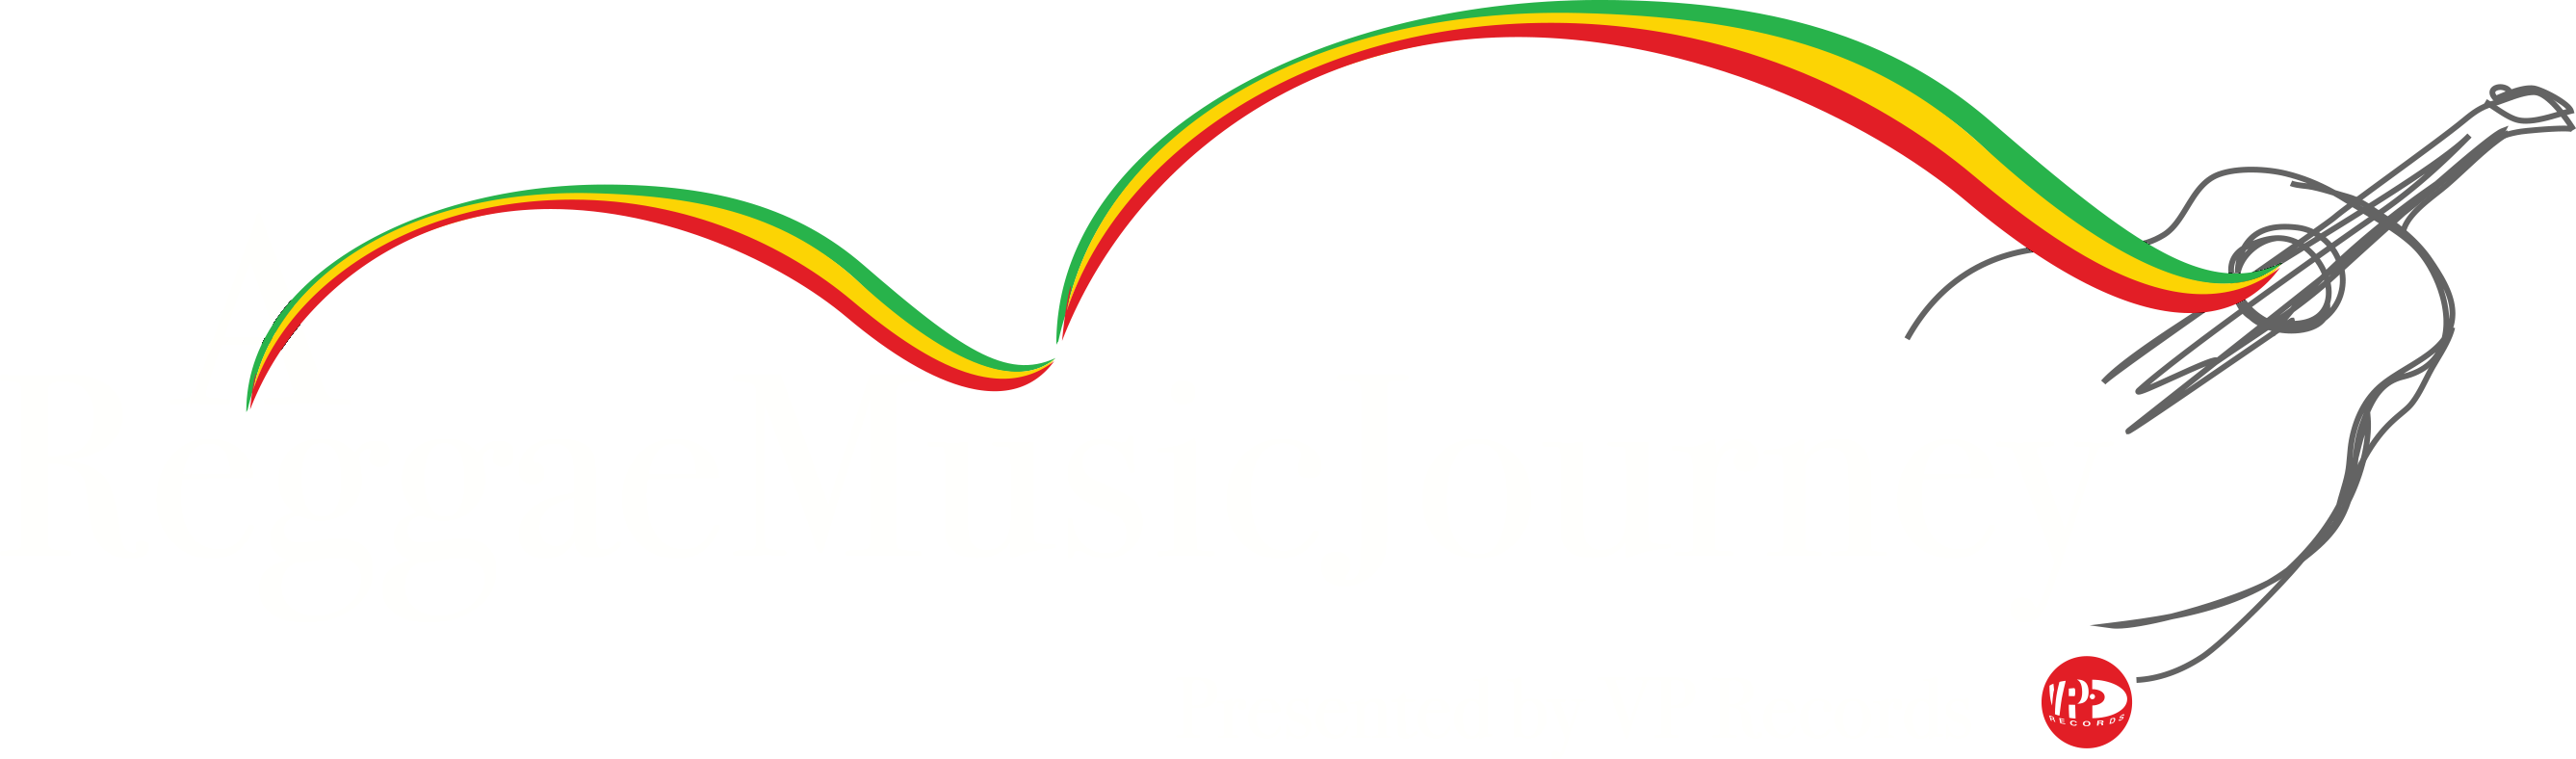 A journey vp records. Hats clipart reggae